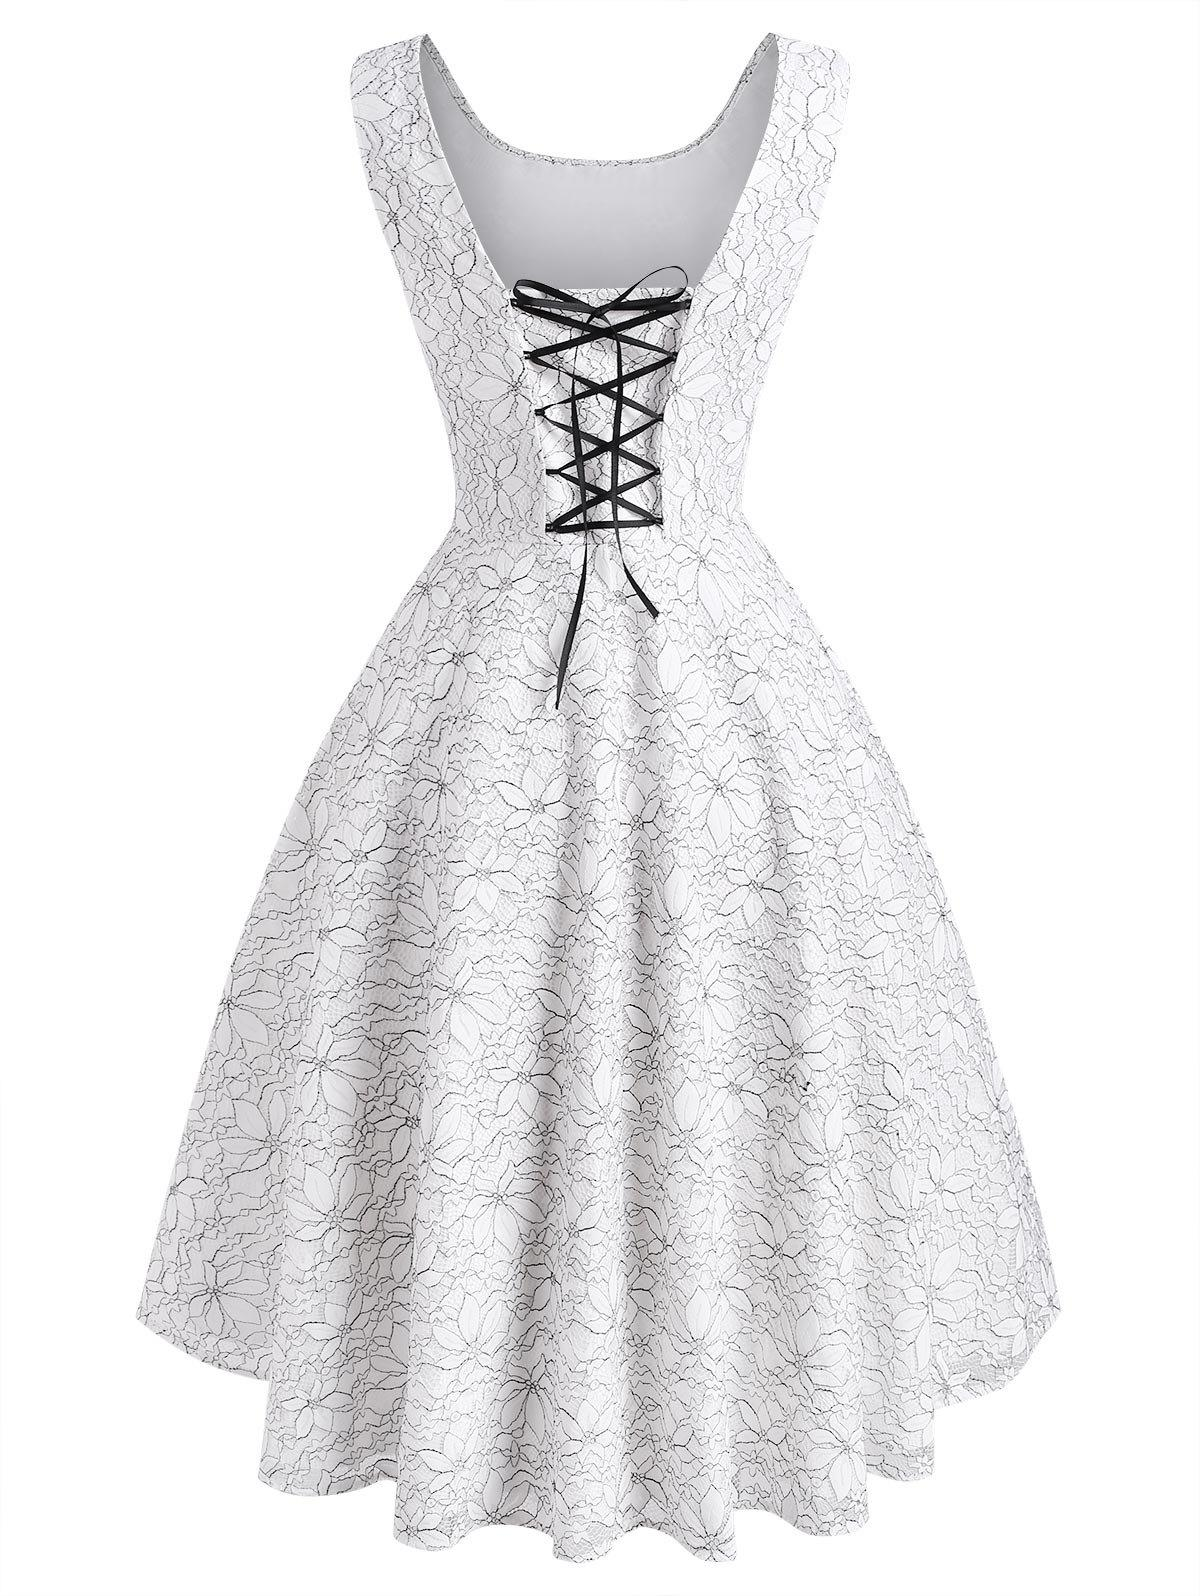 Flower Butterfly Lace Overlay Lace-up High Low Dress - WHITE XL